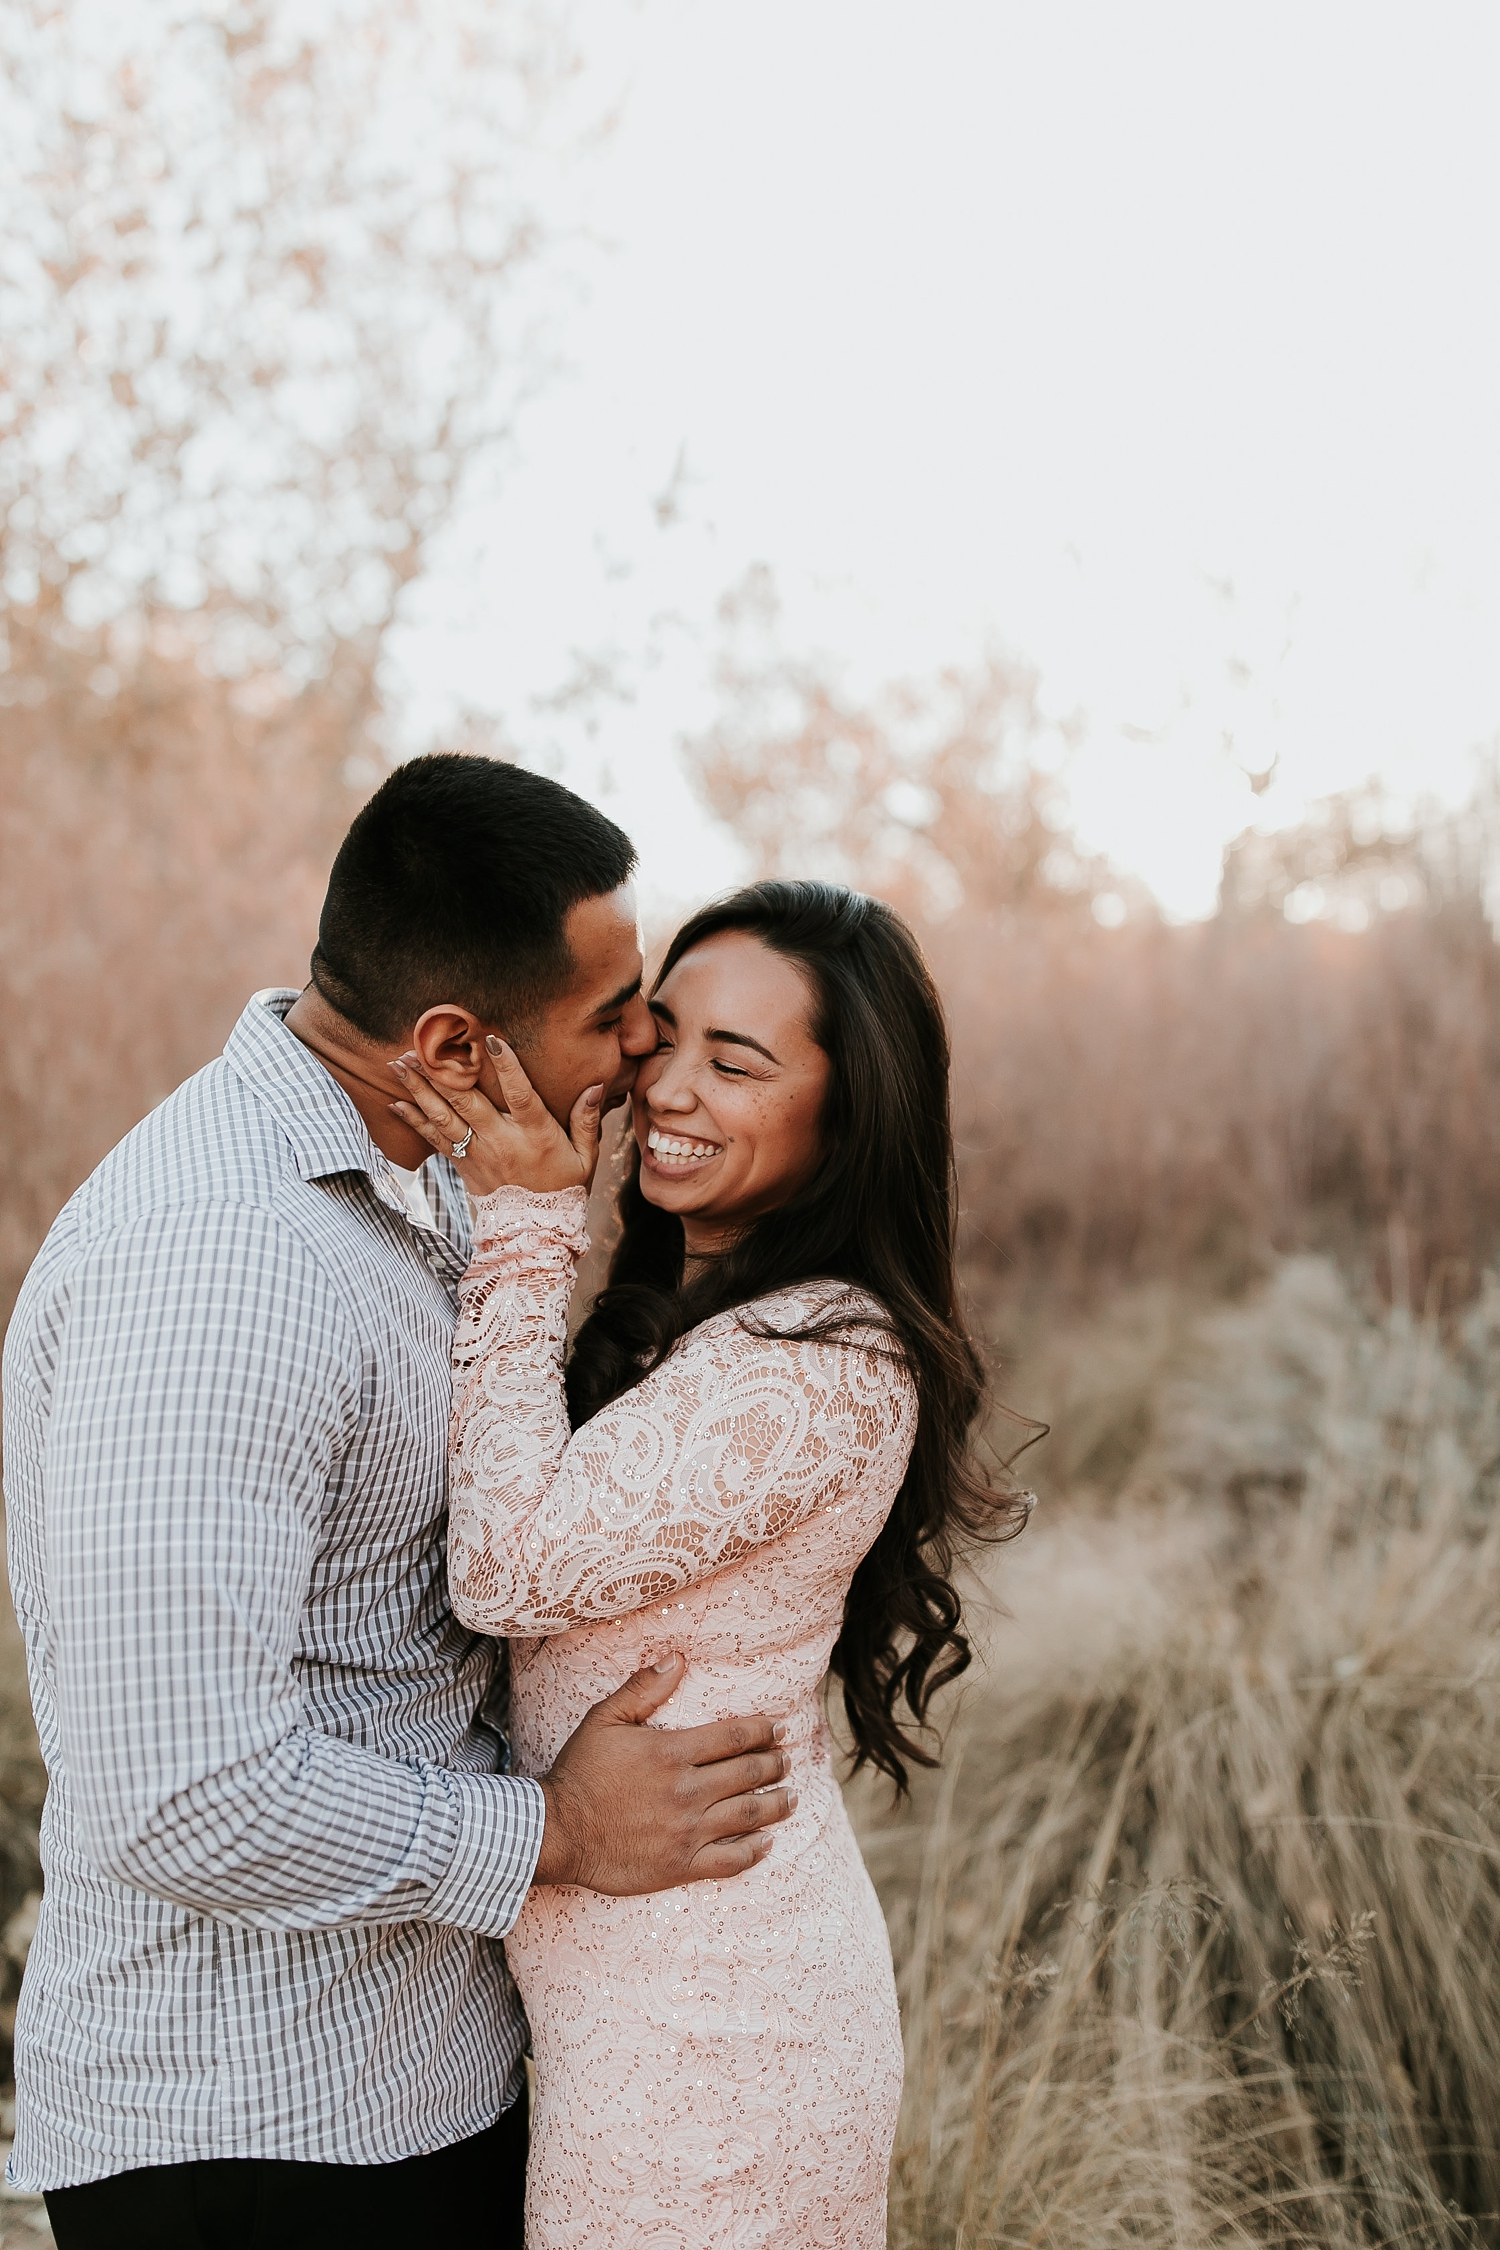 Alicia+lucia+photography+-+albuquerque+wedding+photographer+-+santa+fe+wedding+photography+-+new+mexico+wedding+photographer+-+albuquerque+winter+engagement+session_0015.jpg